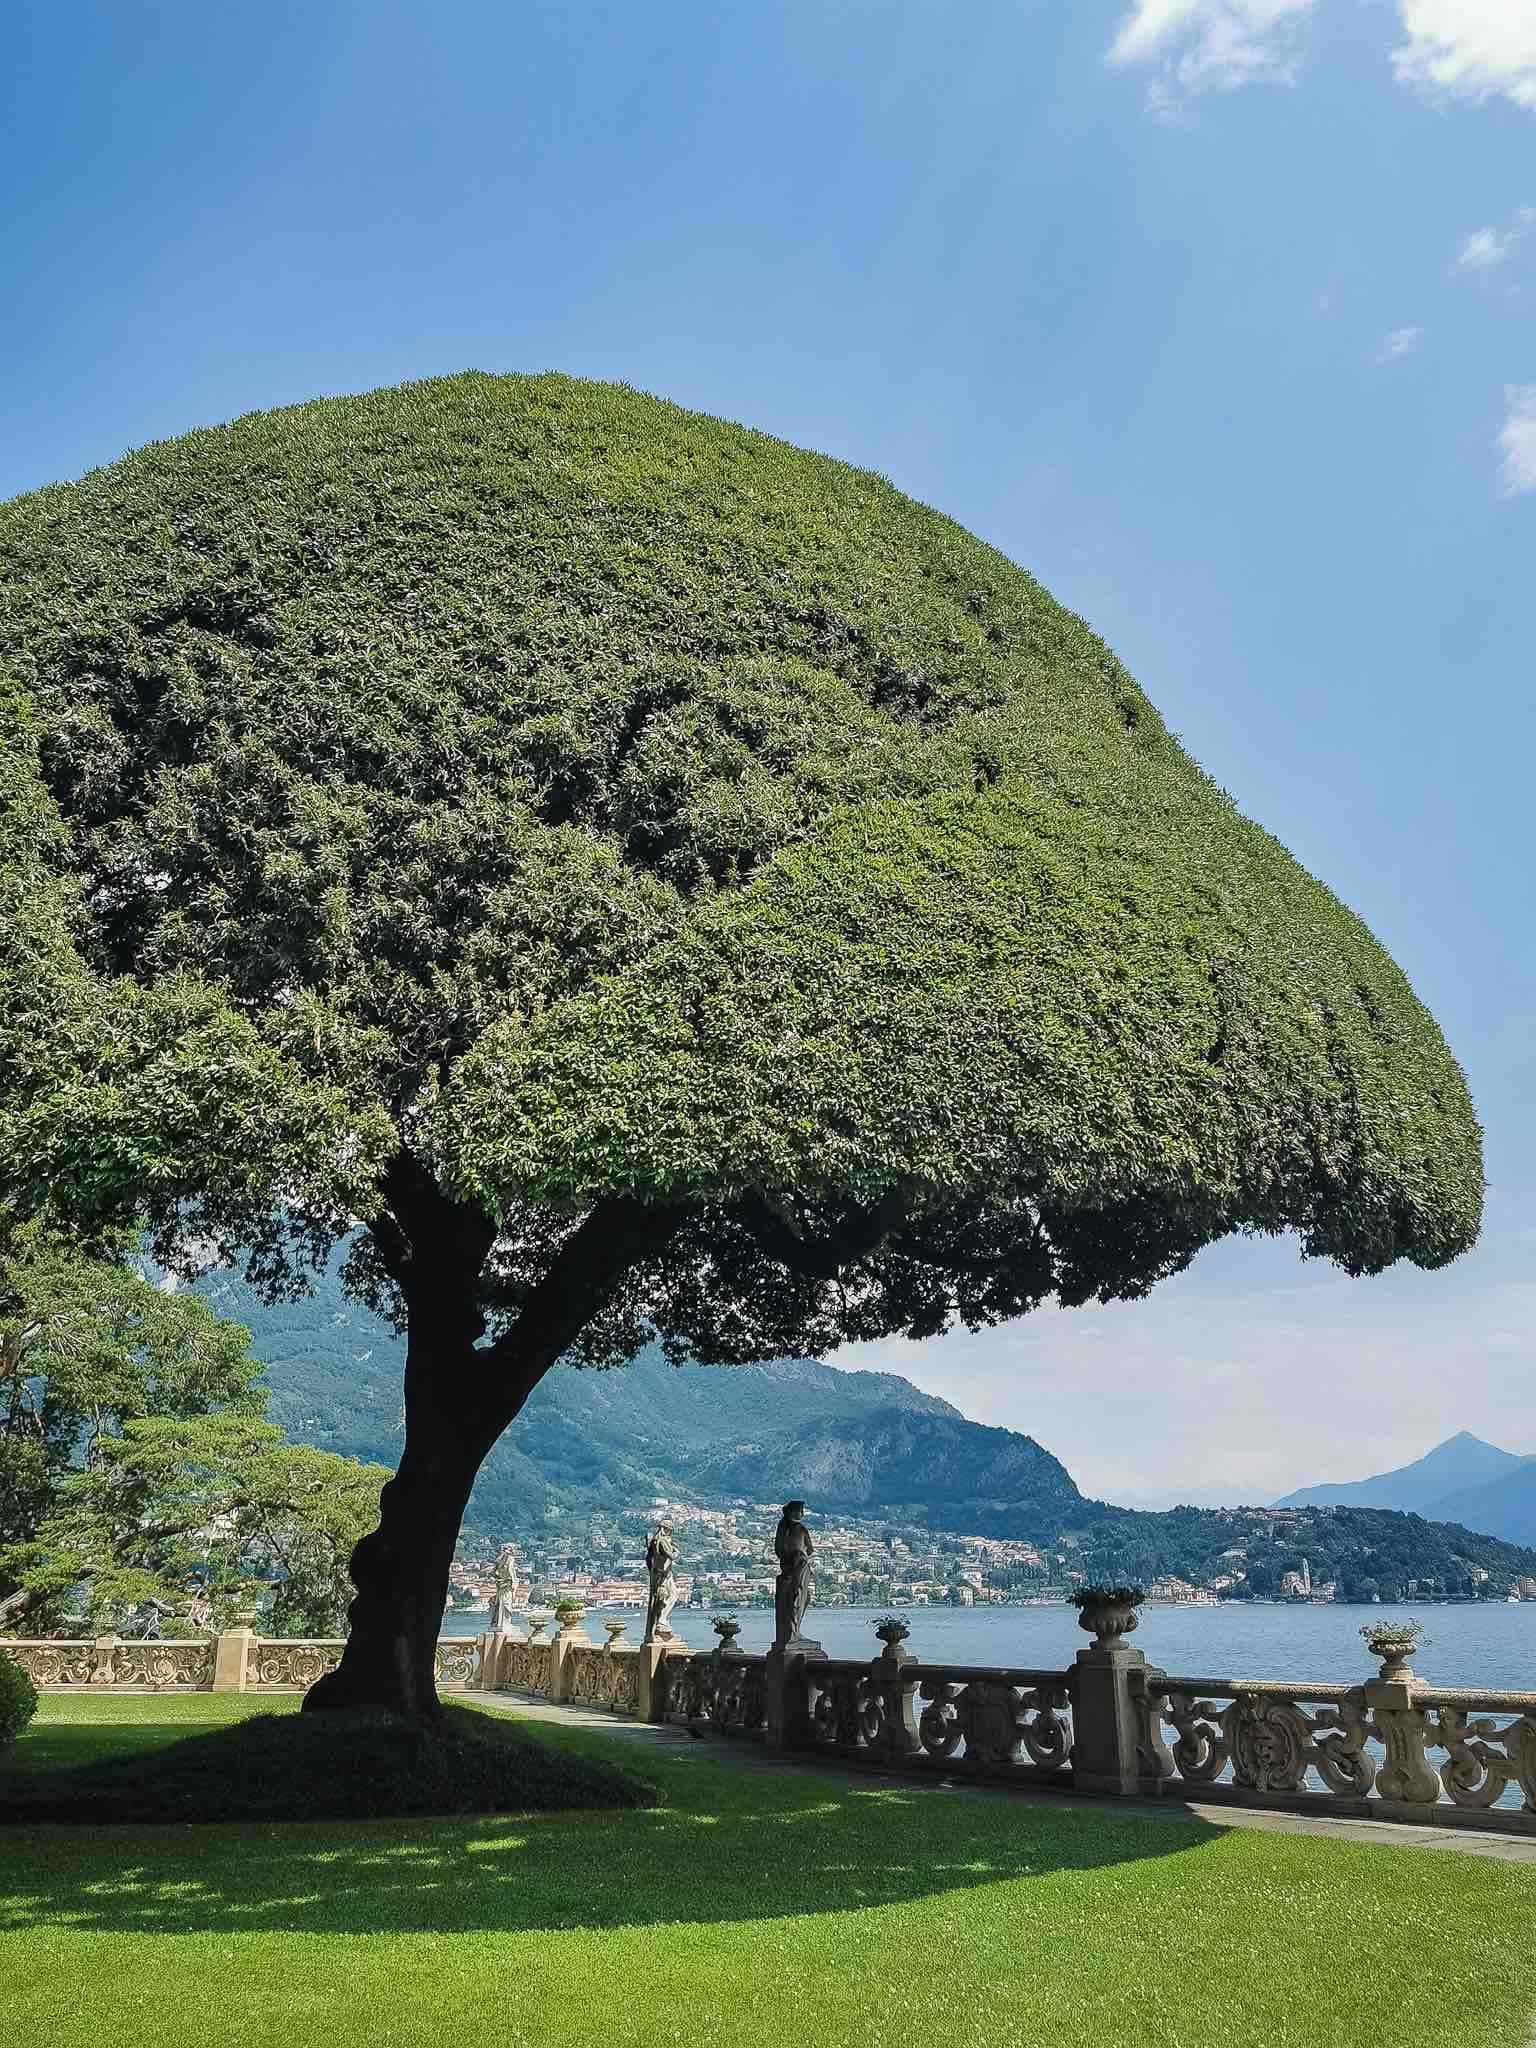 The beautiful holm oak of Villa del Balbianello, shaped like an umbrella